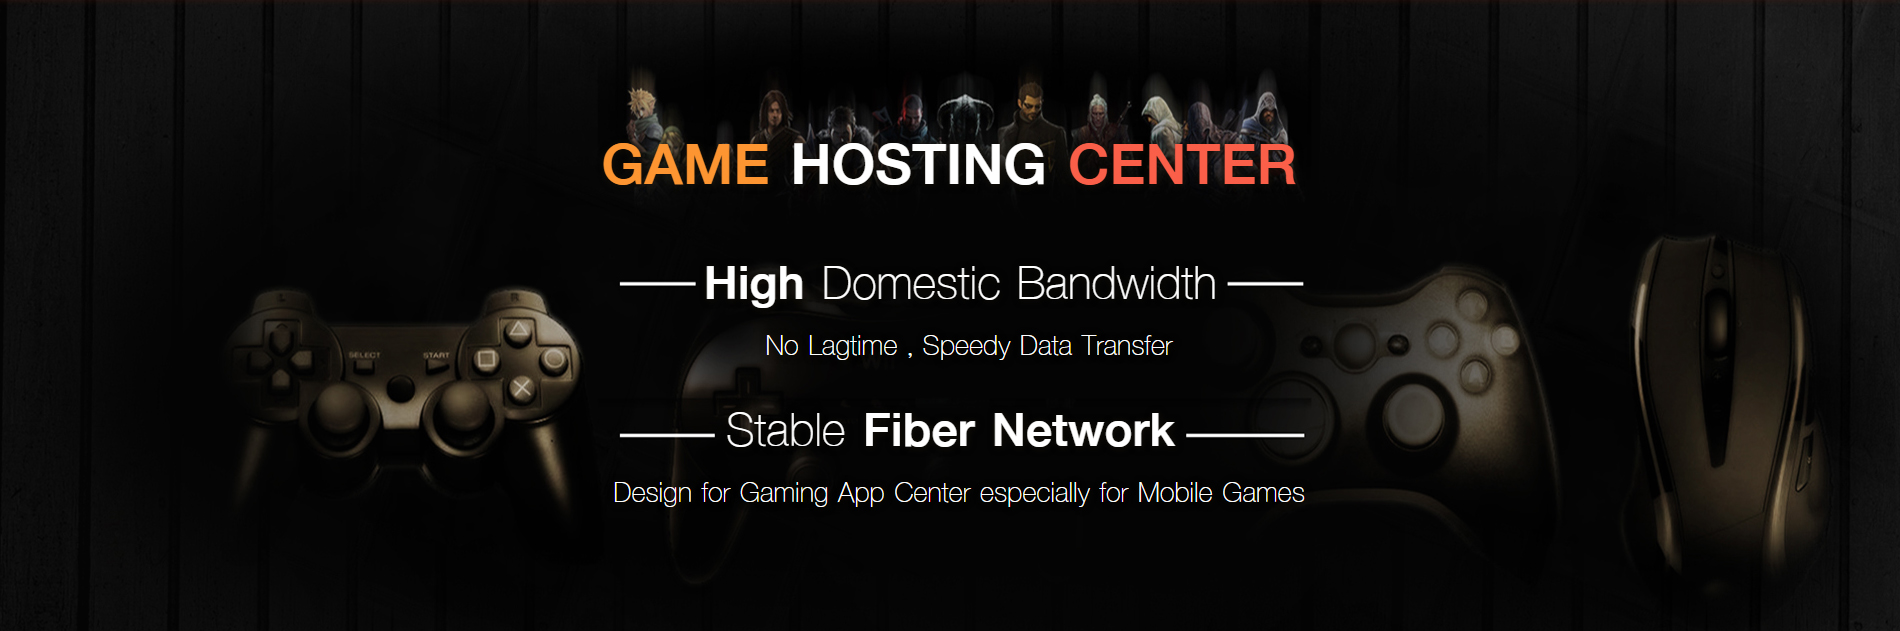 Game Hosting Center